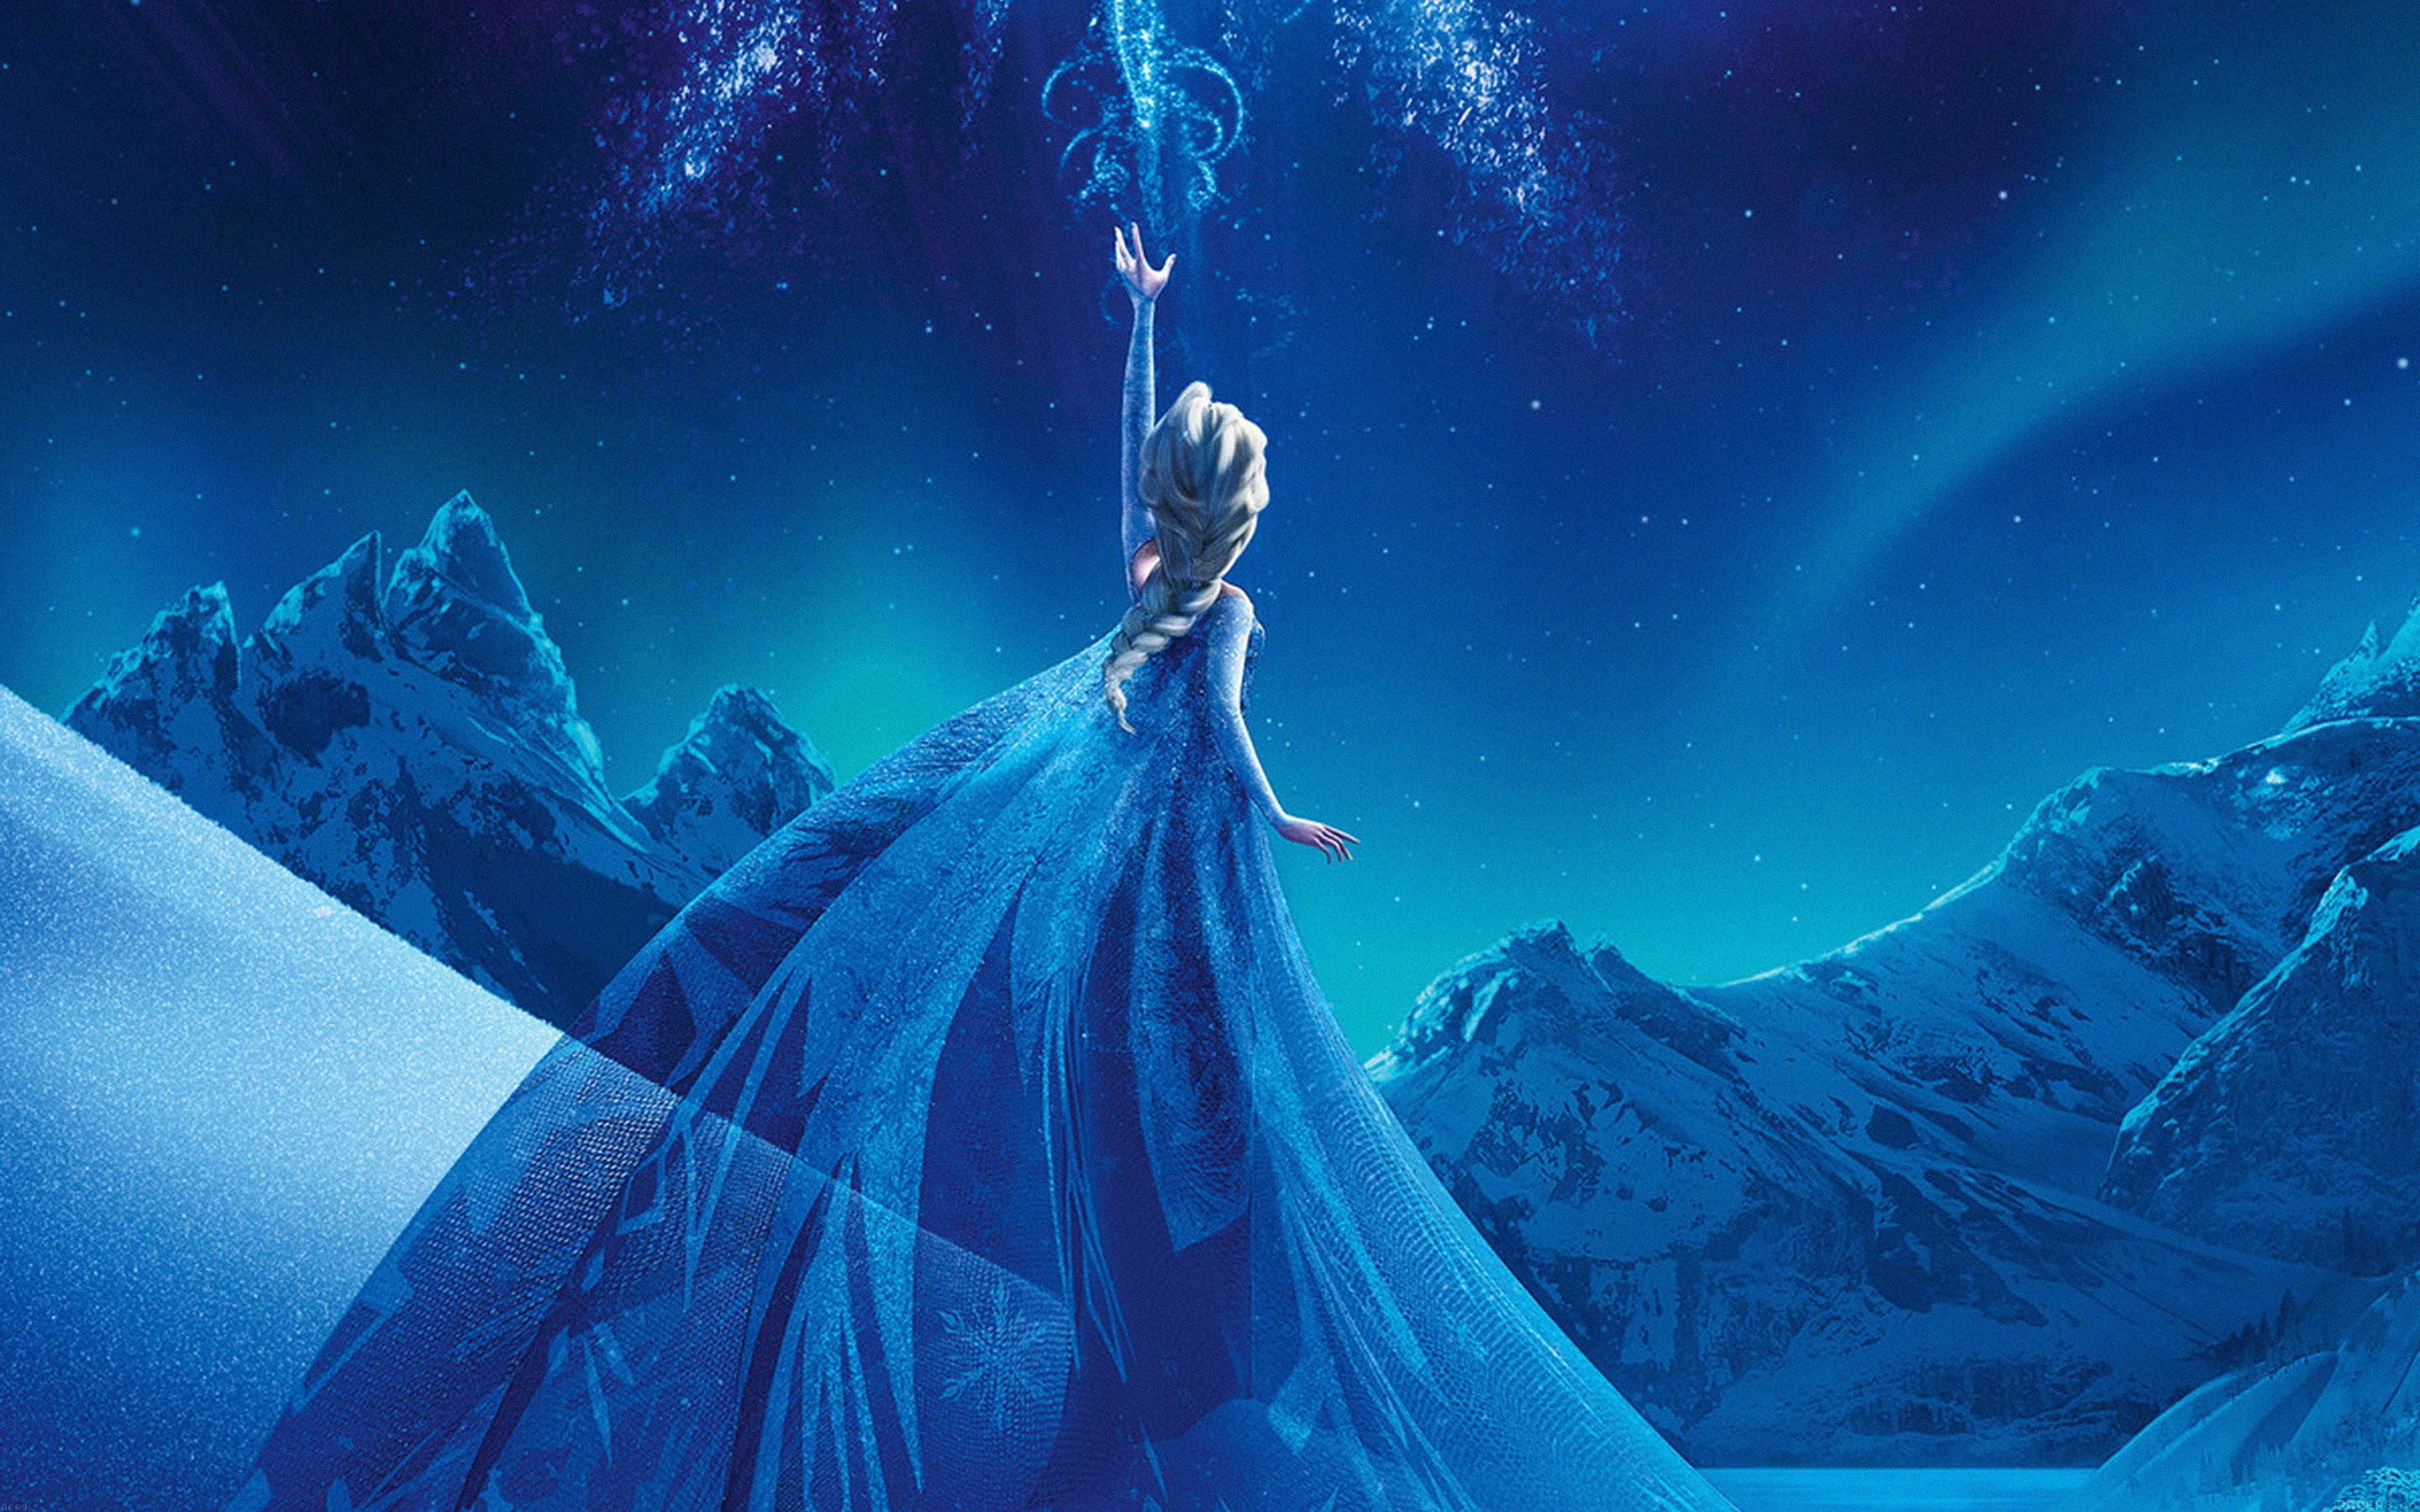 Res: 2880x1800, Elsa of Frozen scene HD wallpaper